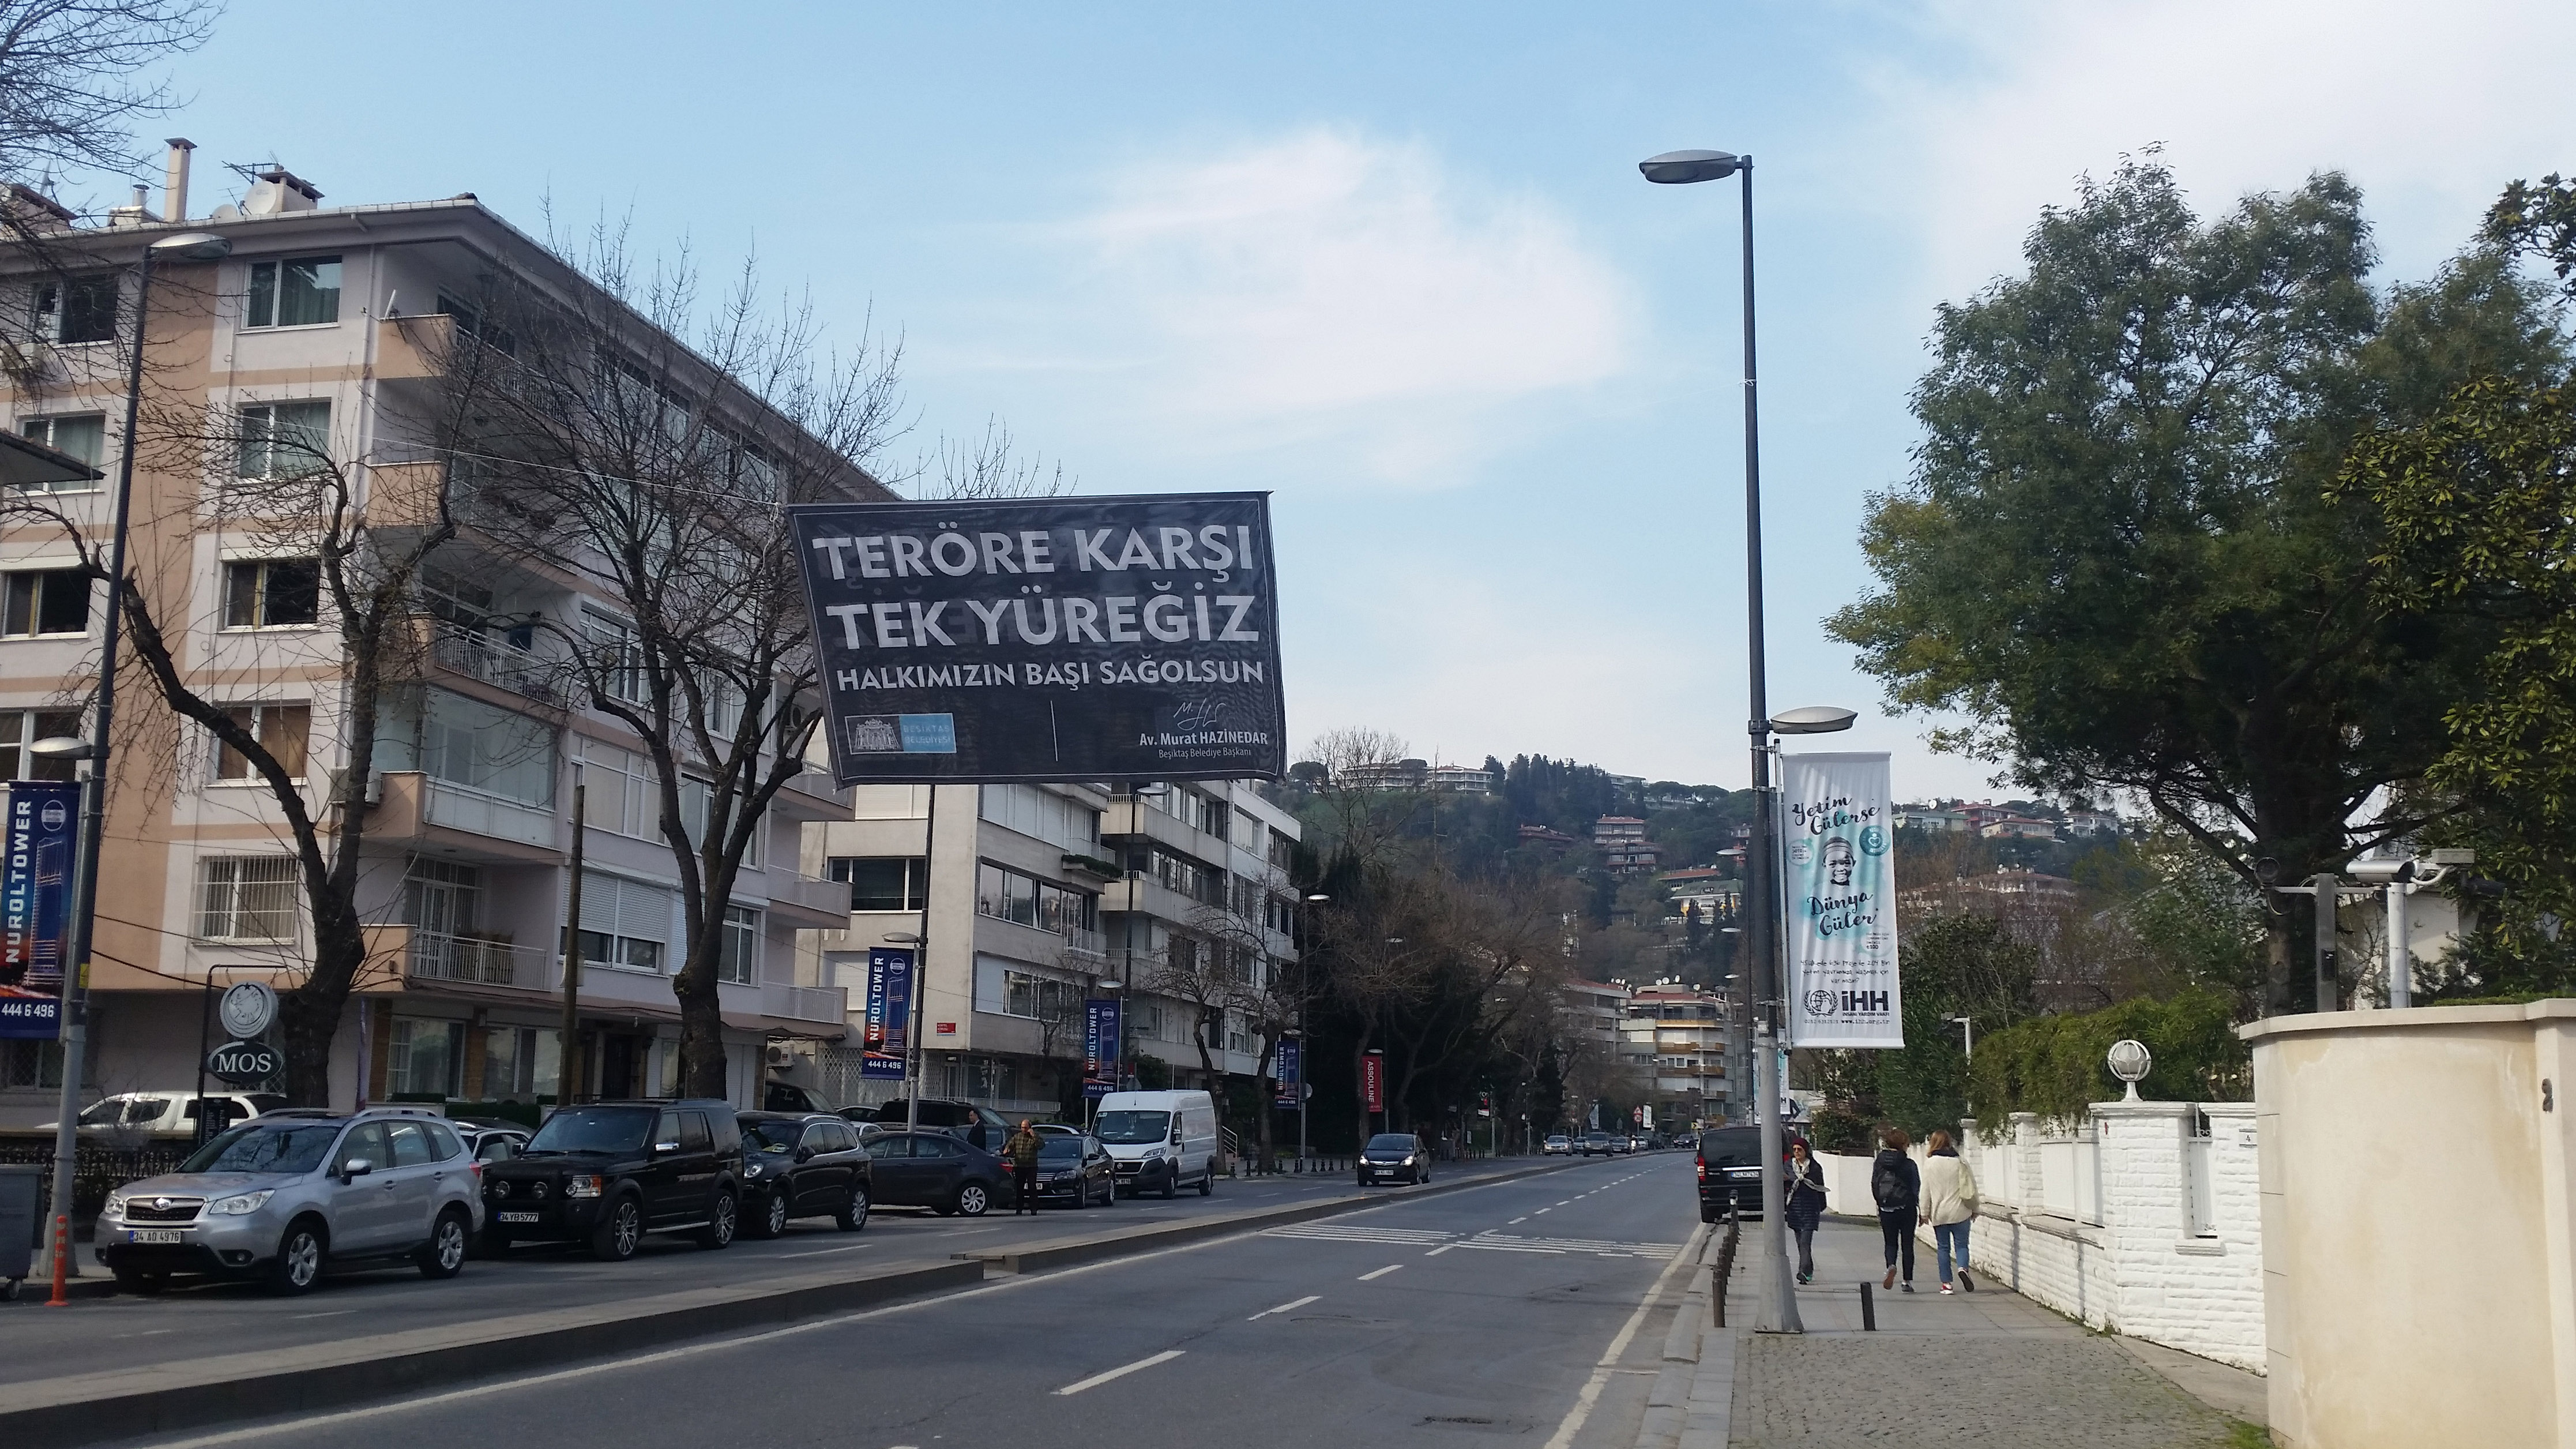 """Banners are hanging all over Istanbul with different messages of unity and anti-terrorism. This one says, """"We are one against terror."""""""